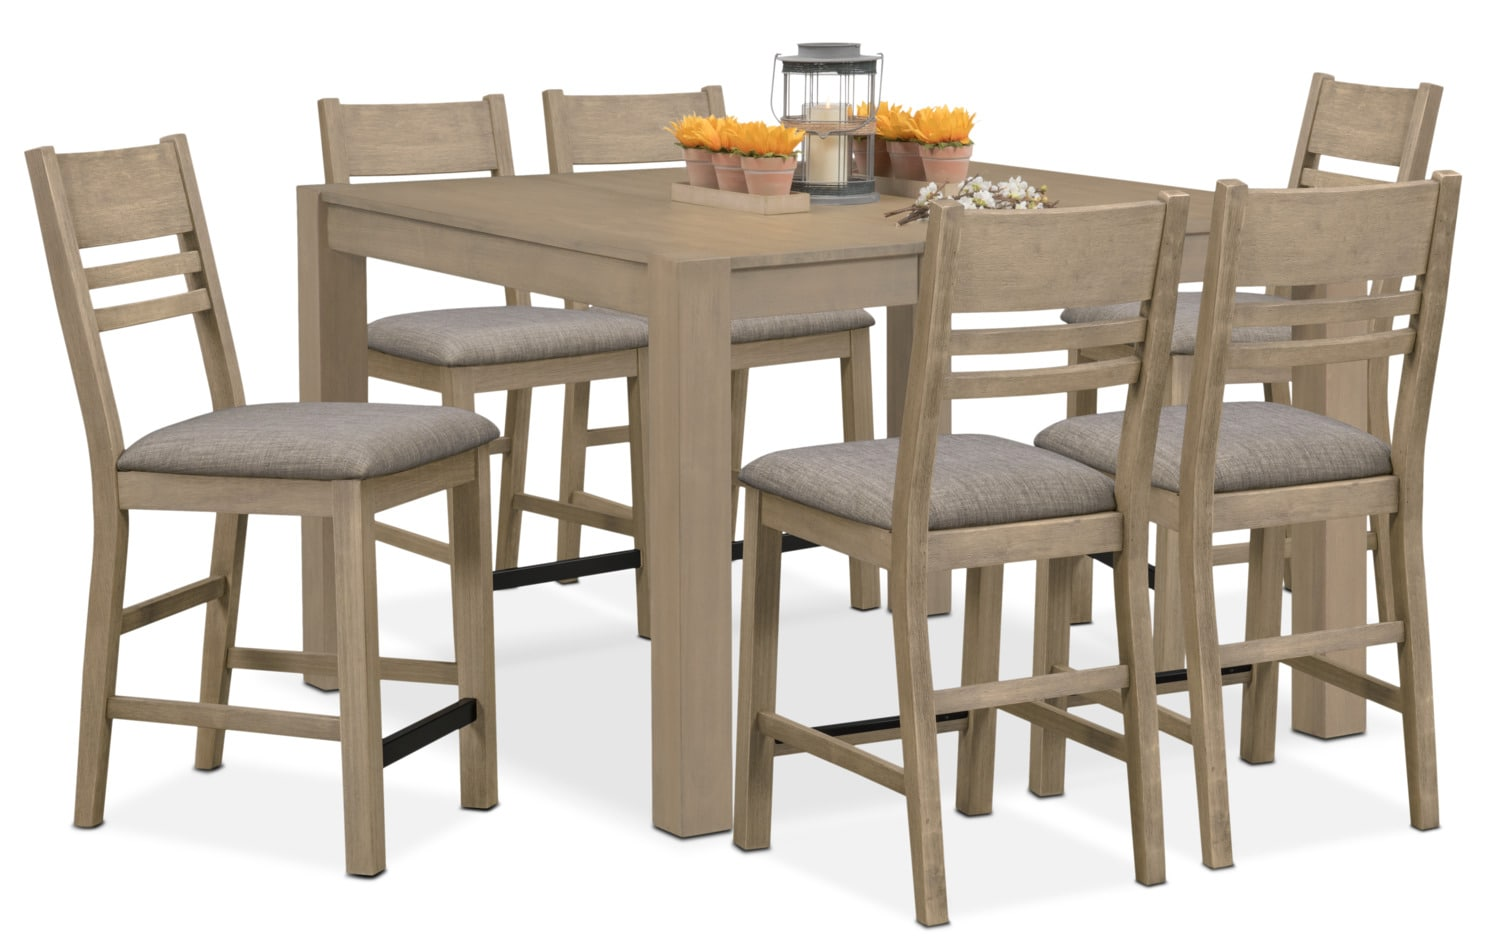 Dining Room Furniture - Tribeca Counter-Height Table and 6 Side Chairs - Gray